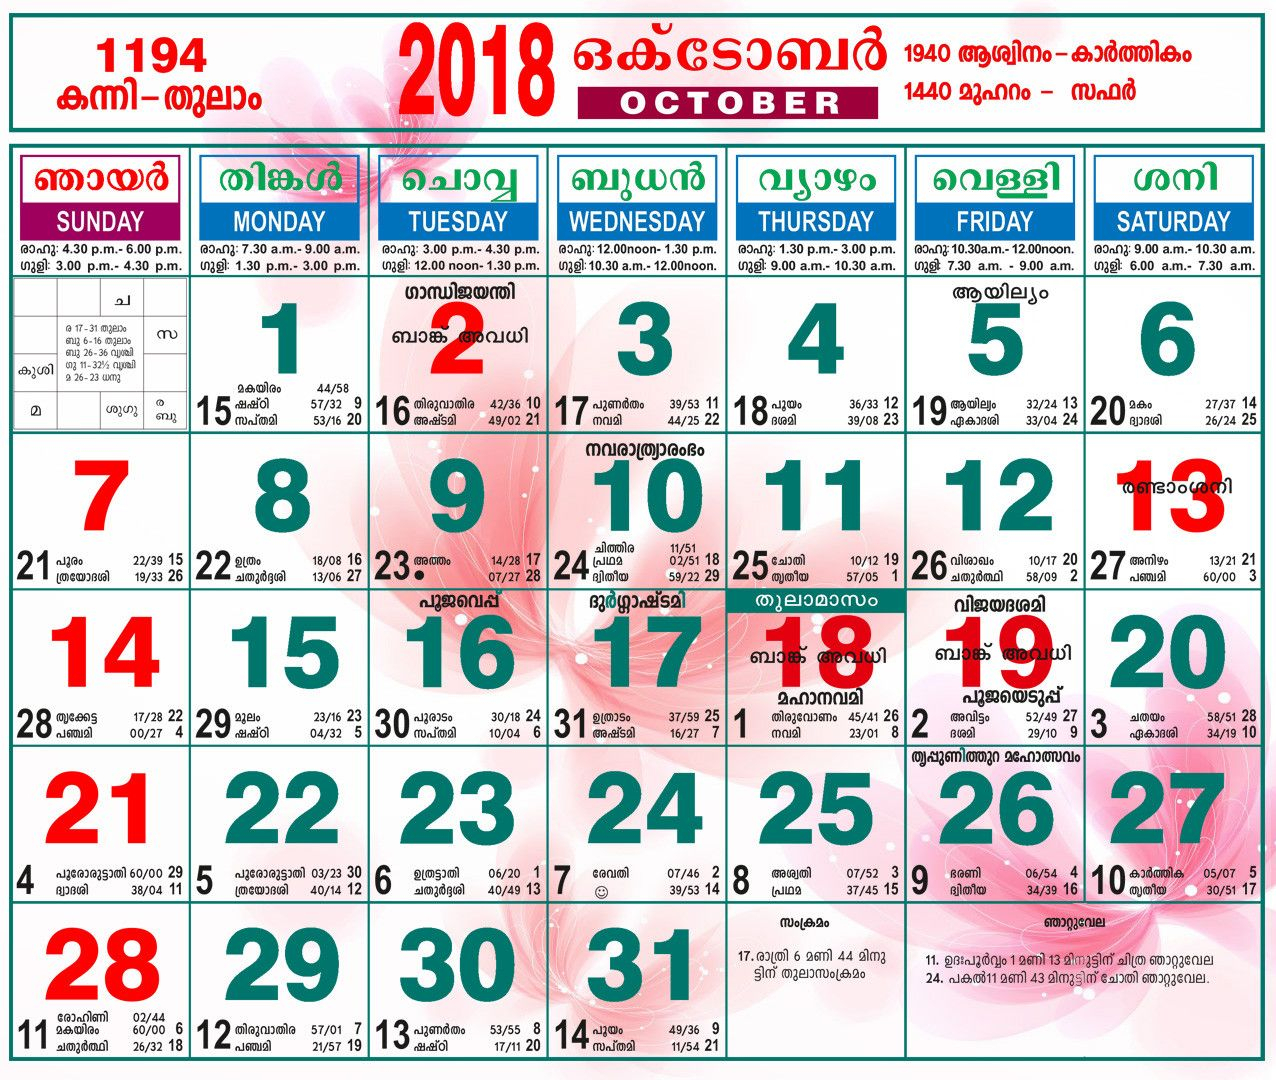 Malayalam Calendar October 2018 | November Calendar for October 2018 Calendar Malayalam